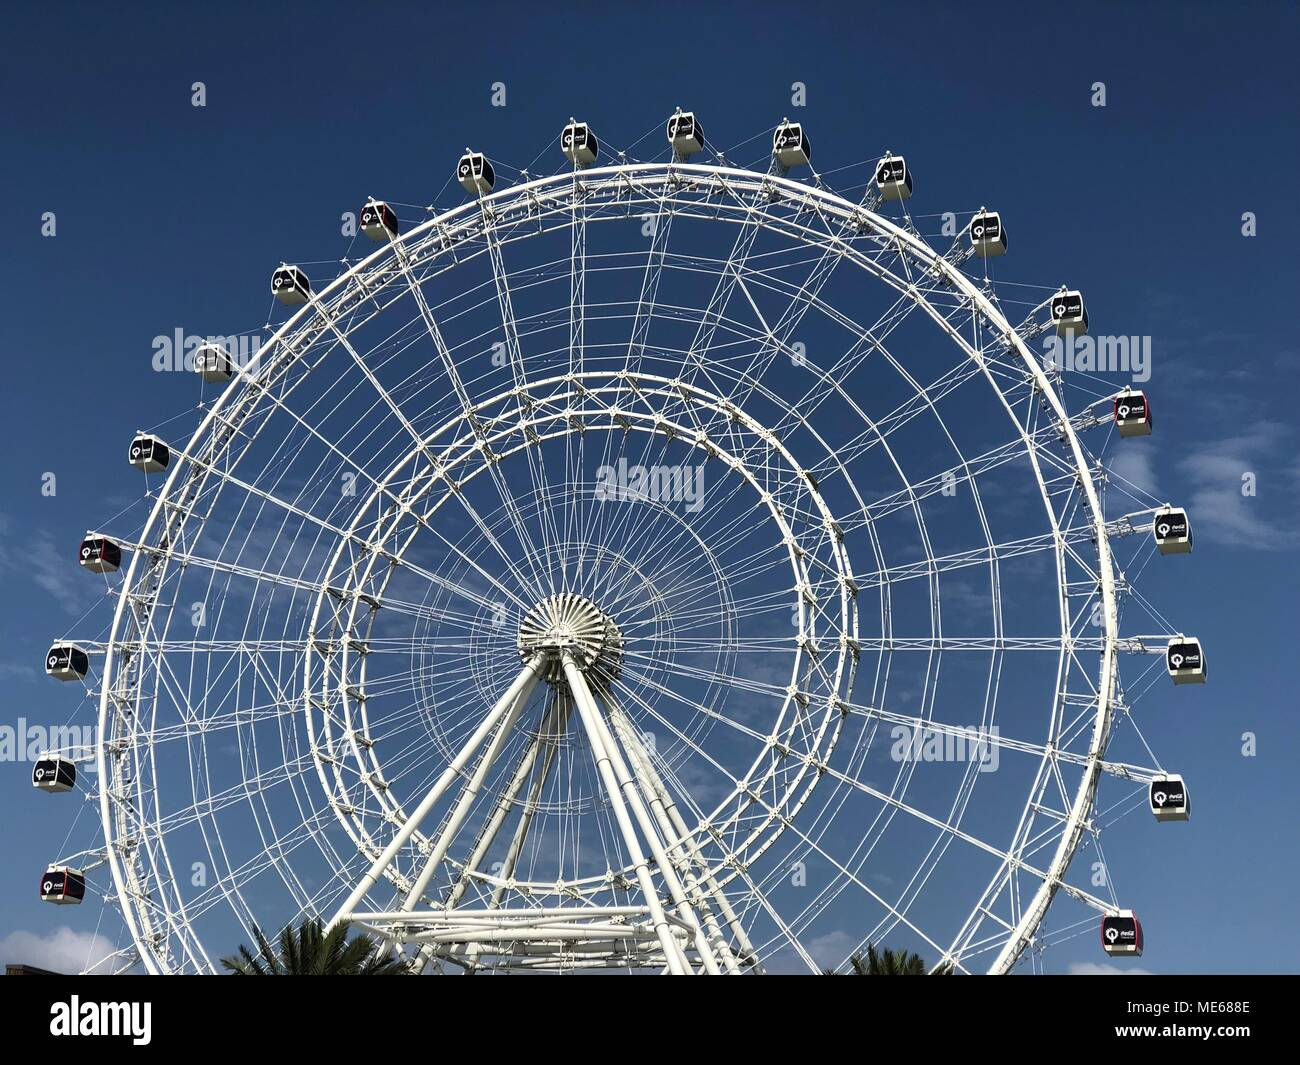 The Orlando Eye A 400 Ft Tall Giant Ferris Wheel And The